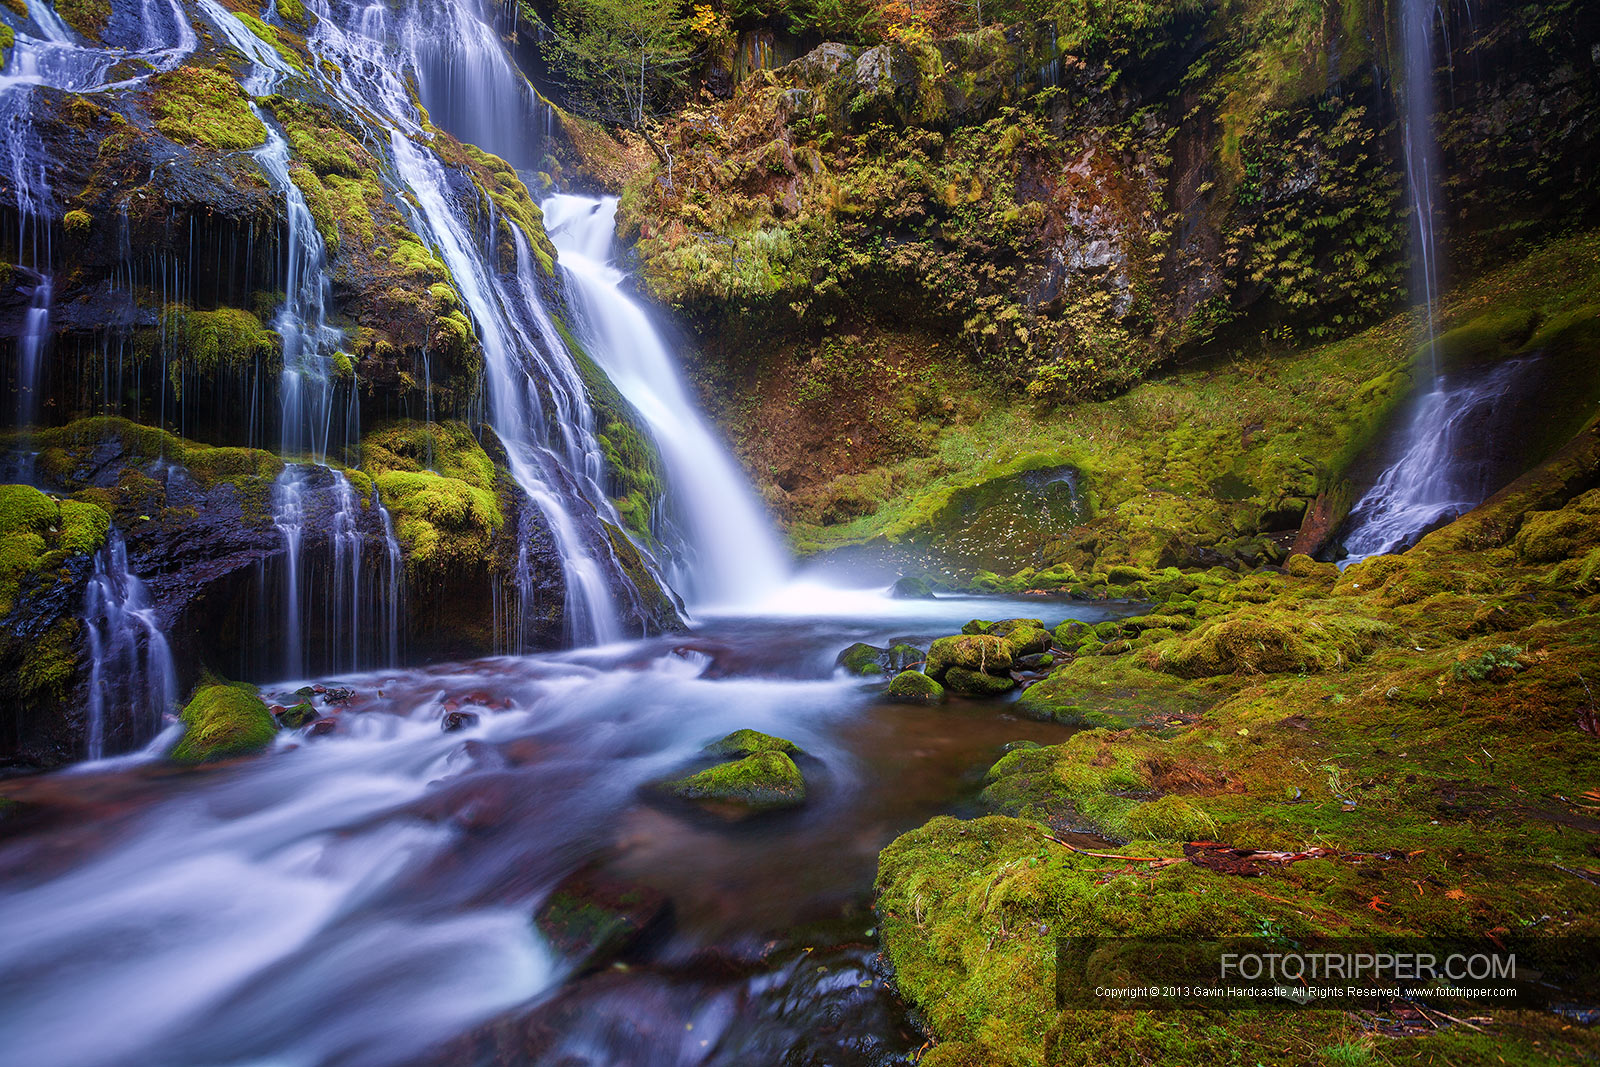 Panther Creek Falls Photography Guide